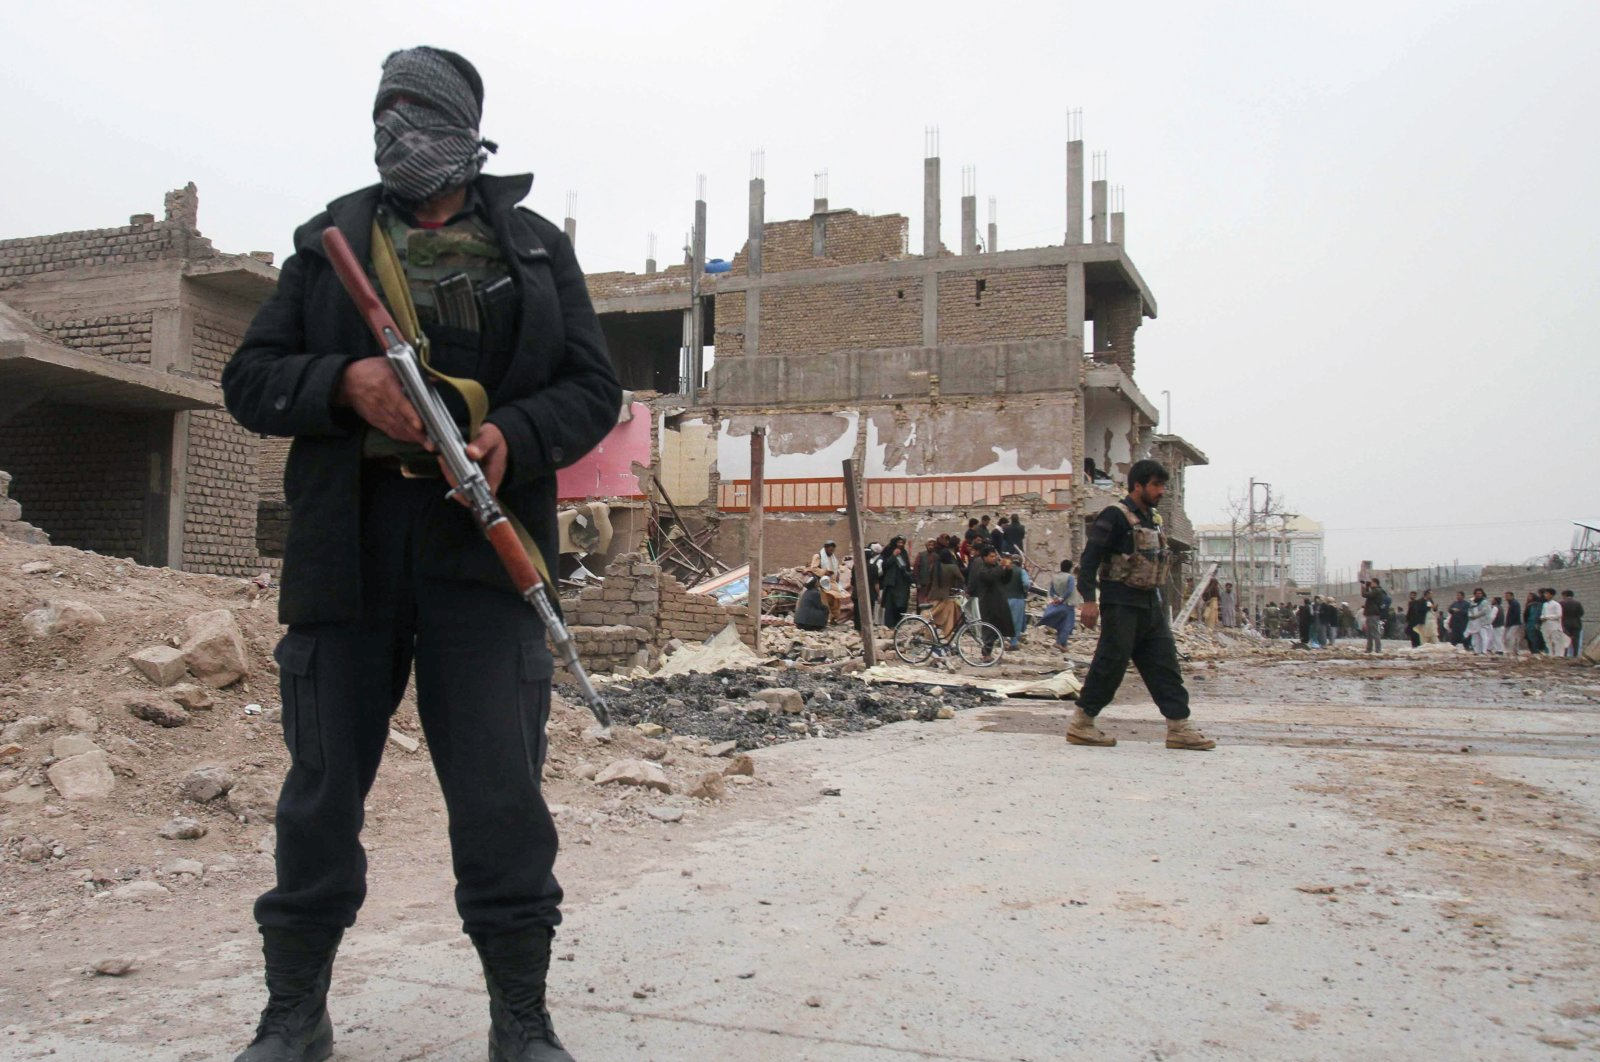 Police officers inspect the site after a car bomb blast in Herat province, Afghanistan, March 13, 2021. (Reuters Photo)